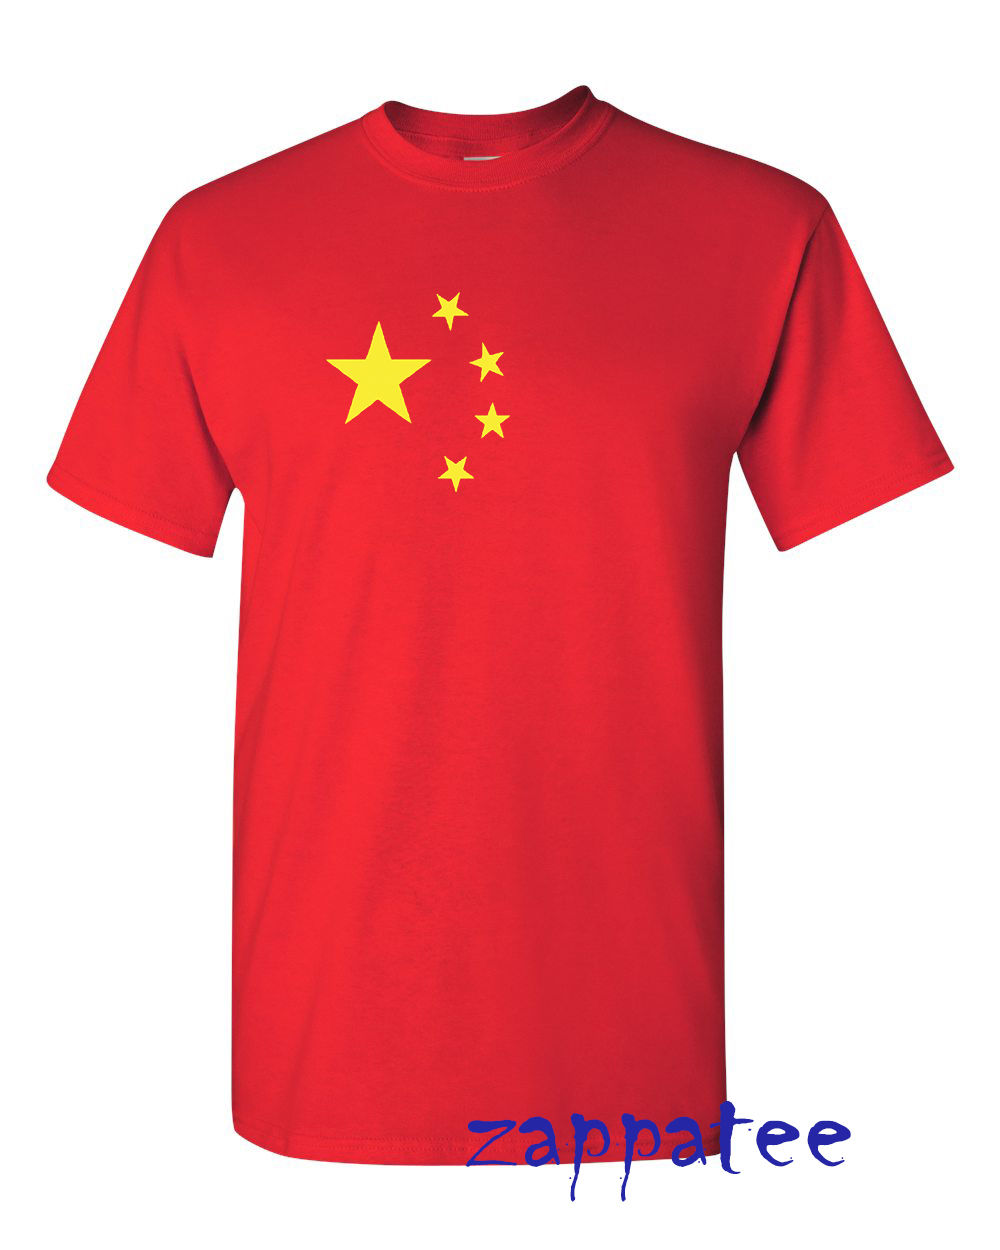 China T Shirt Red with yellow stars as on the Peoples Republic of flag New Shirts Funny Tops Tee Unisex